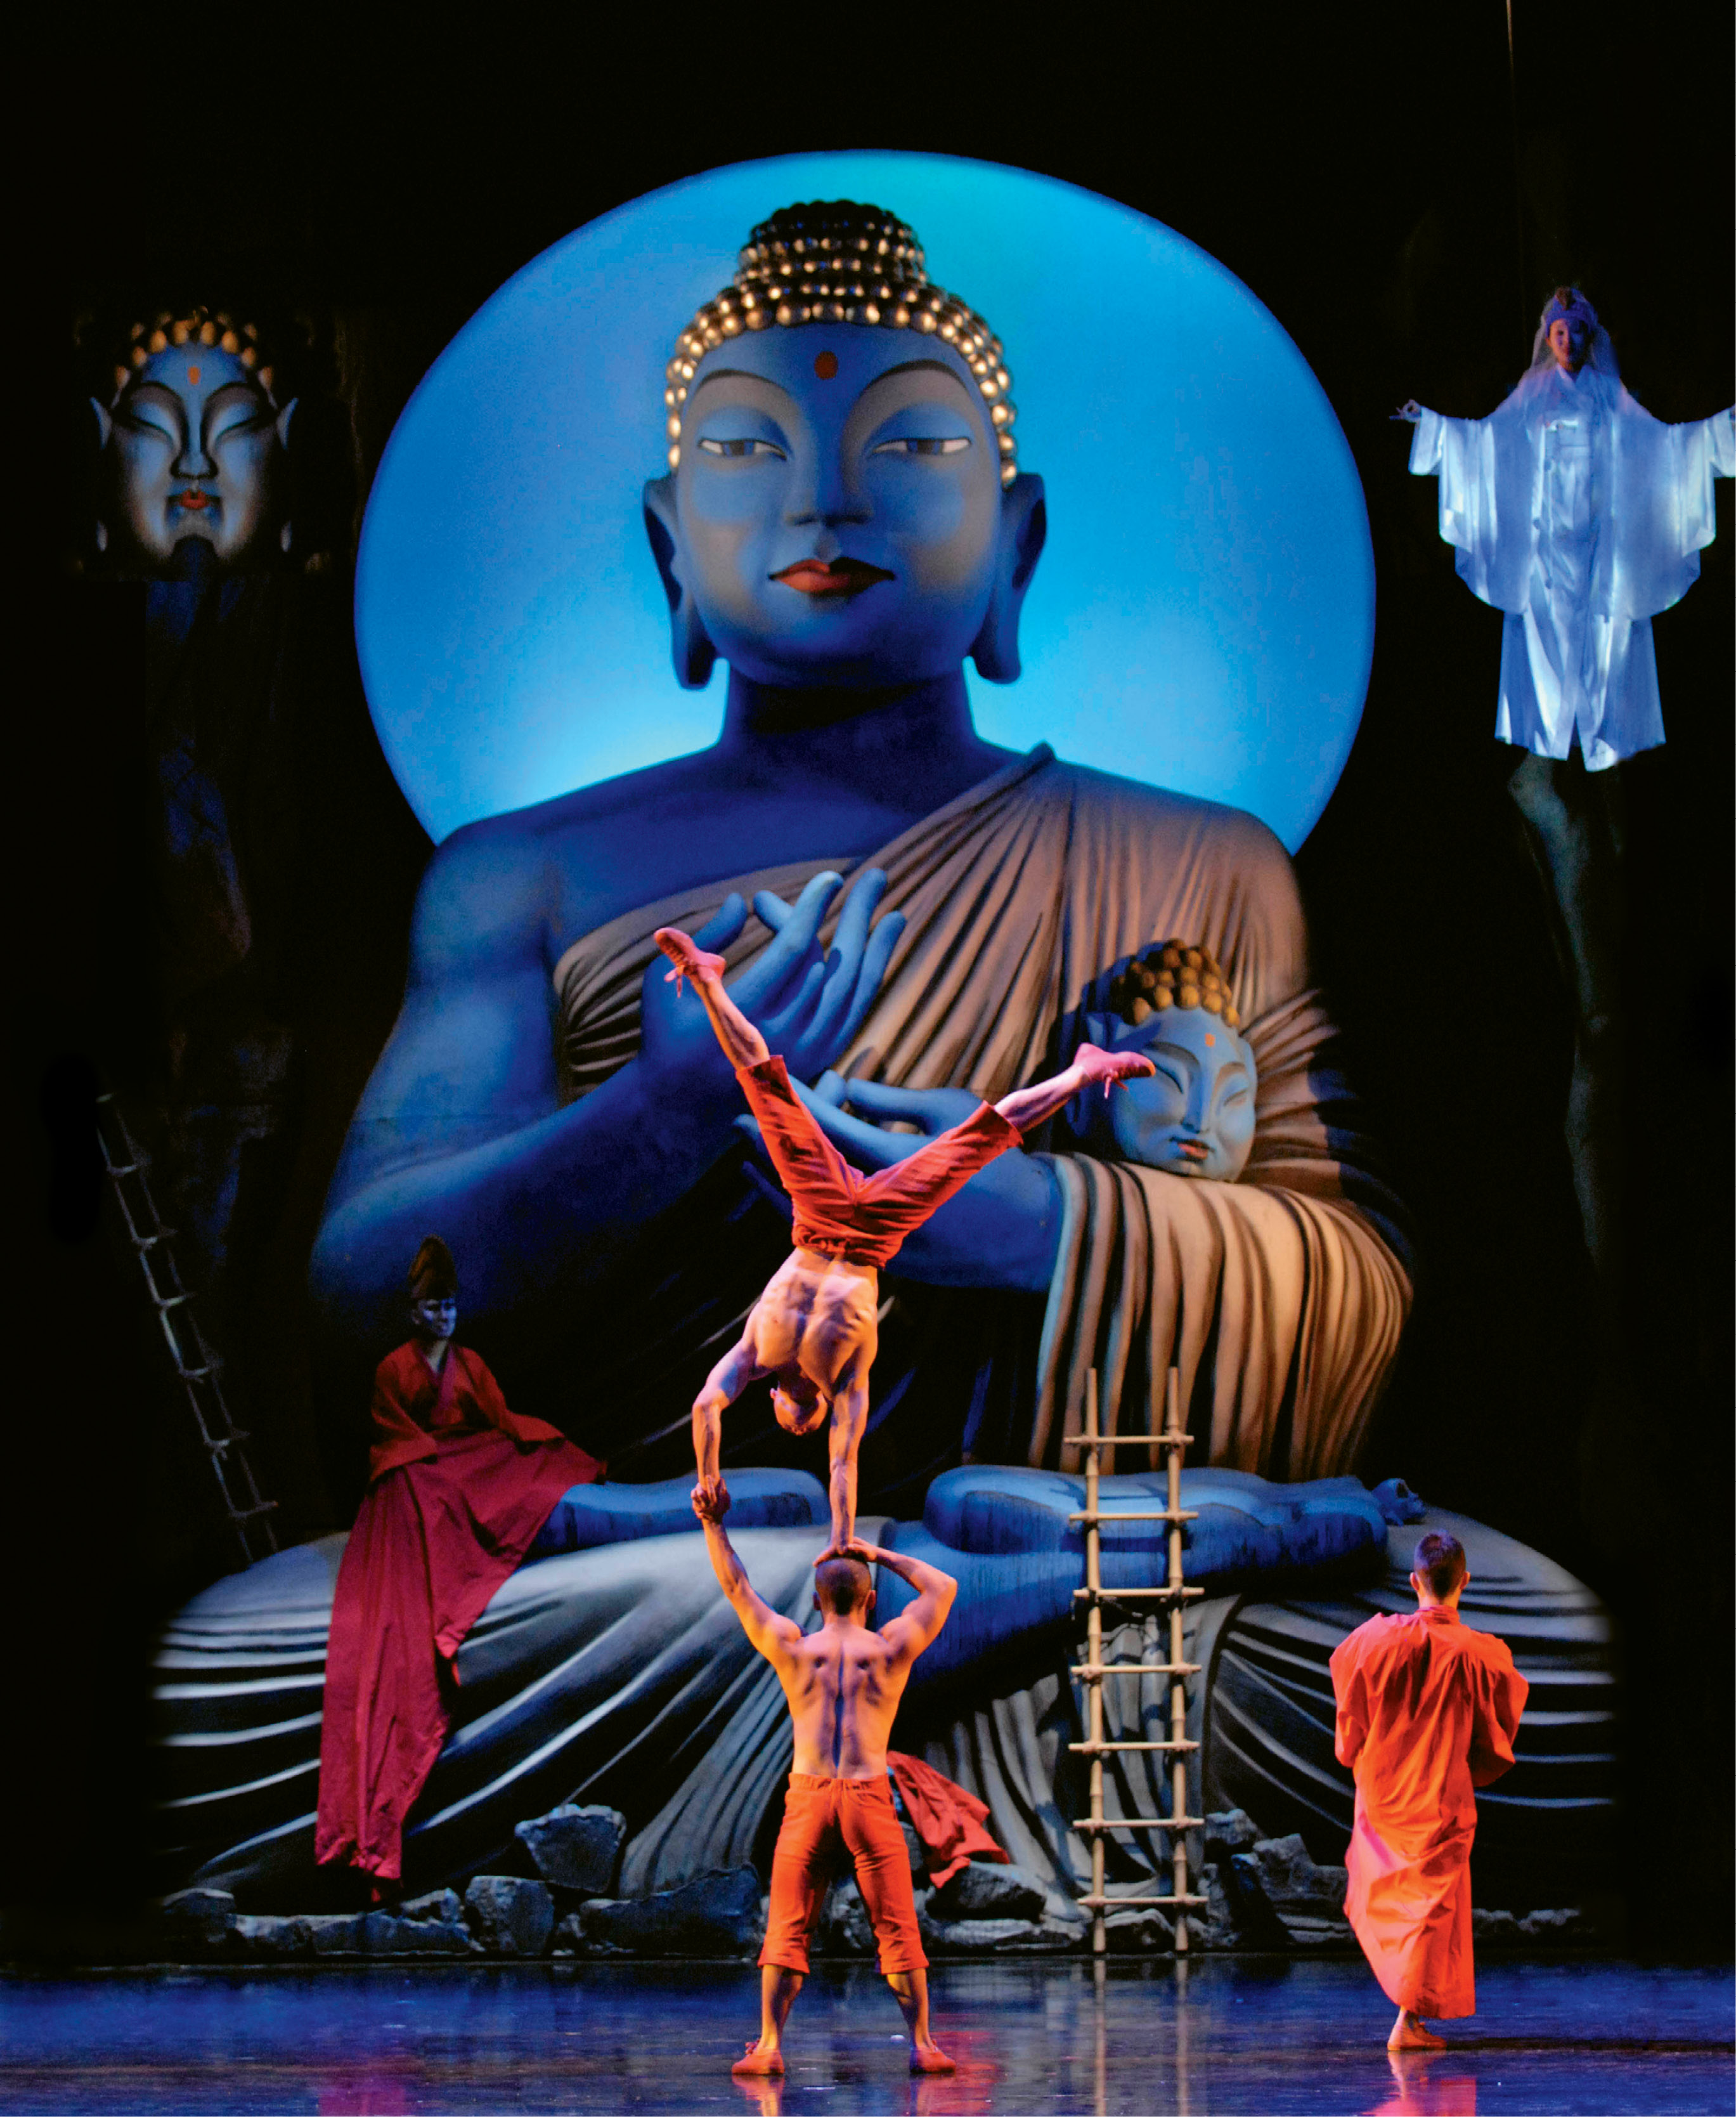 Spoleto's 2008 American premiere of Monkey: Journey to the West by Chinese actor and director Chen Shi-Zheng, featured a pop and classic opera blend, complete with acrobats and a giant Buddha custom created for the Sottile stage.